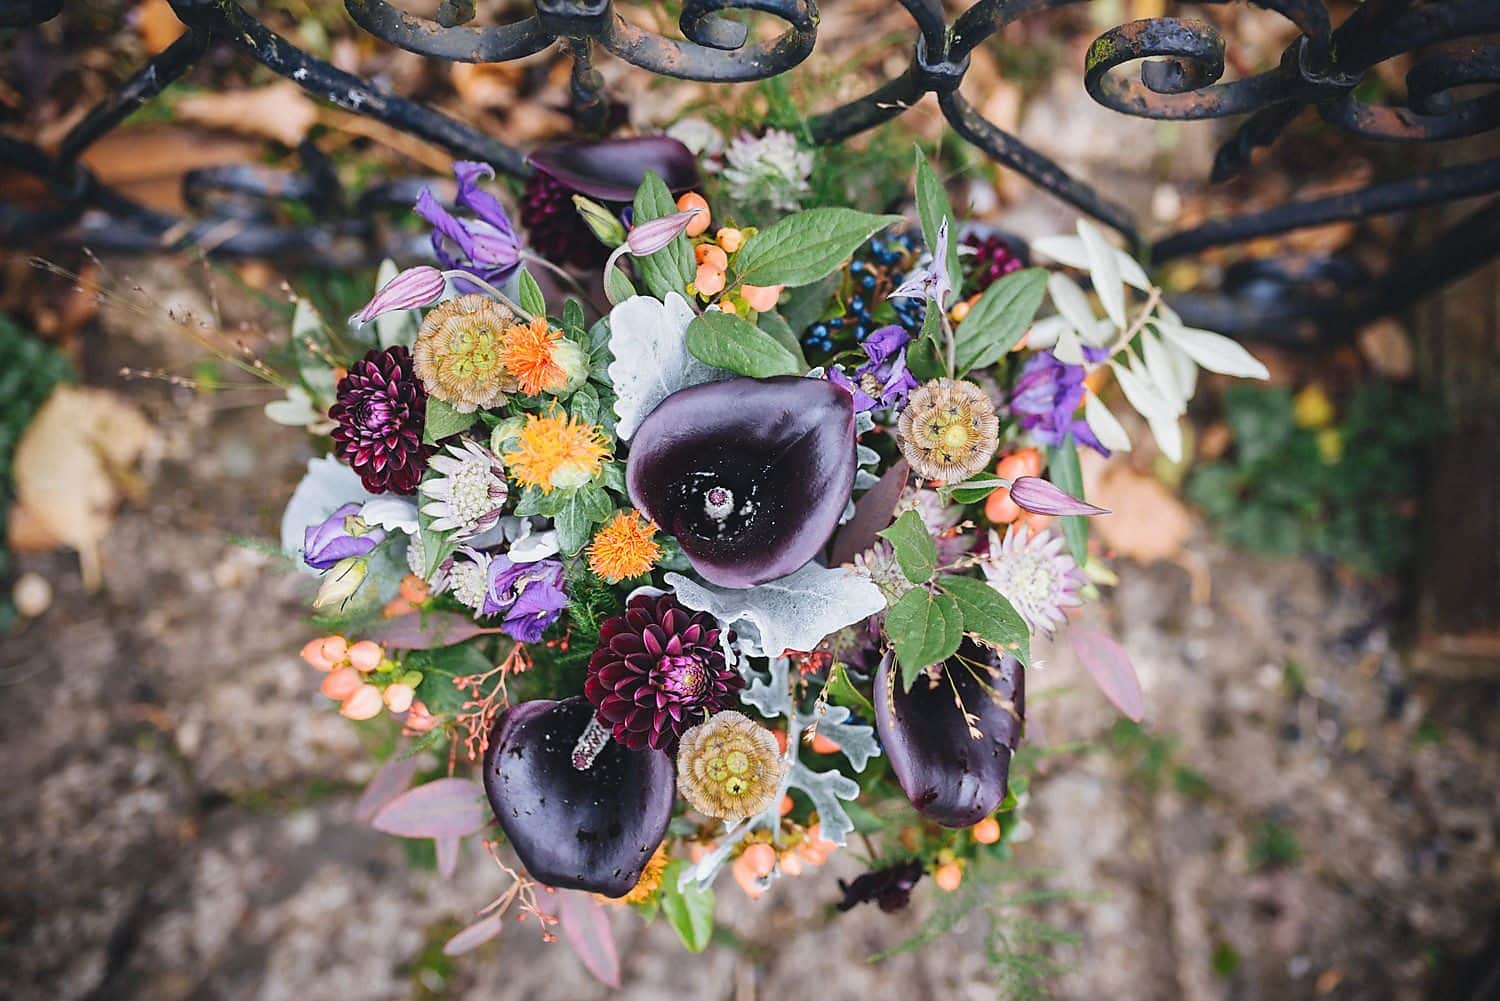 Bridal bouquet from above, featuring rich autumnal shades of deep purple, berry red and orange